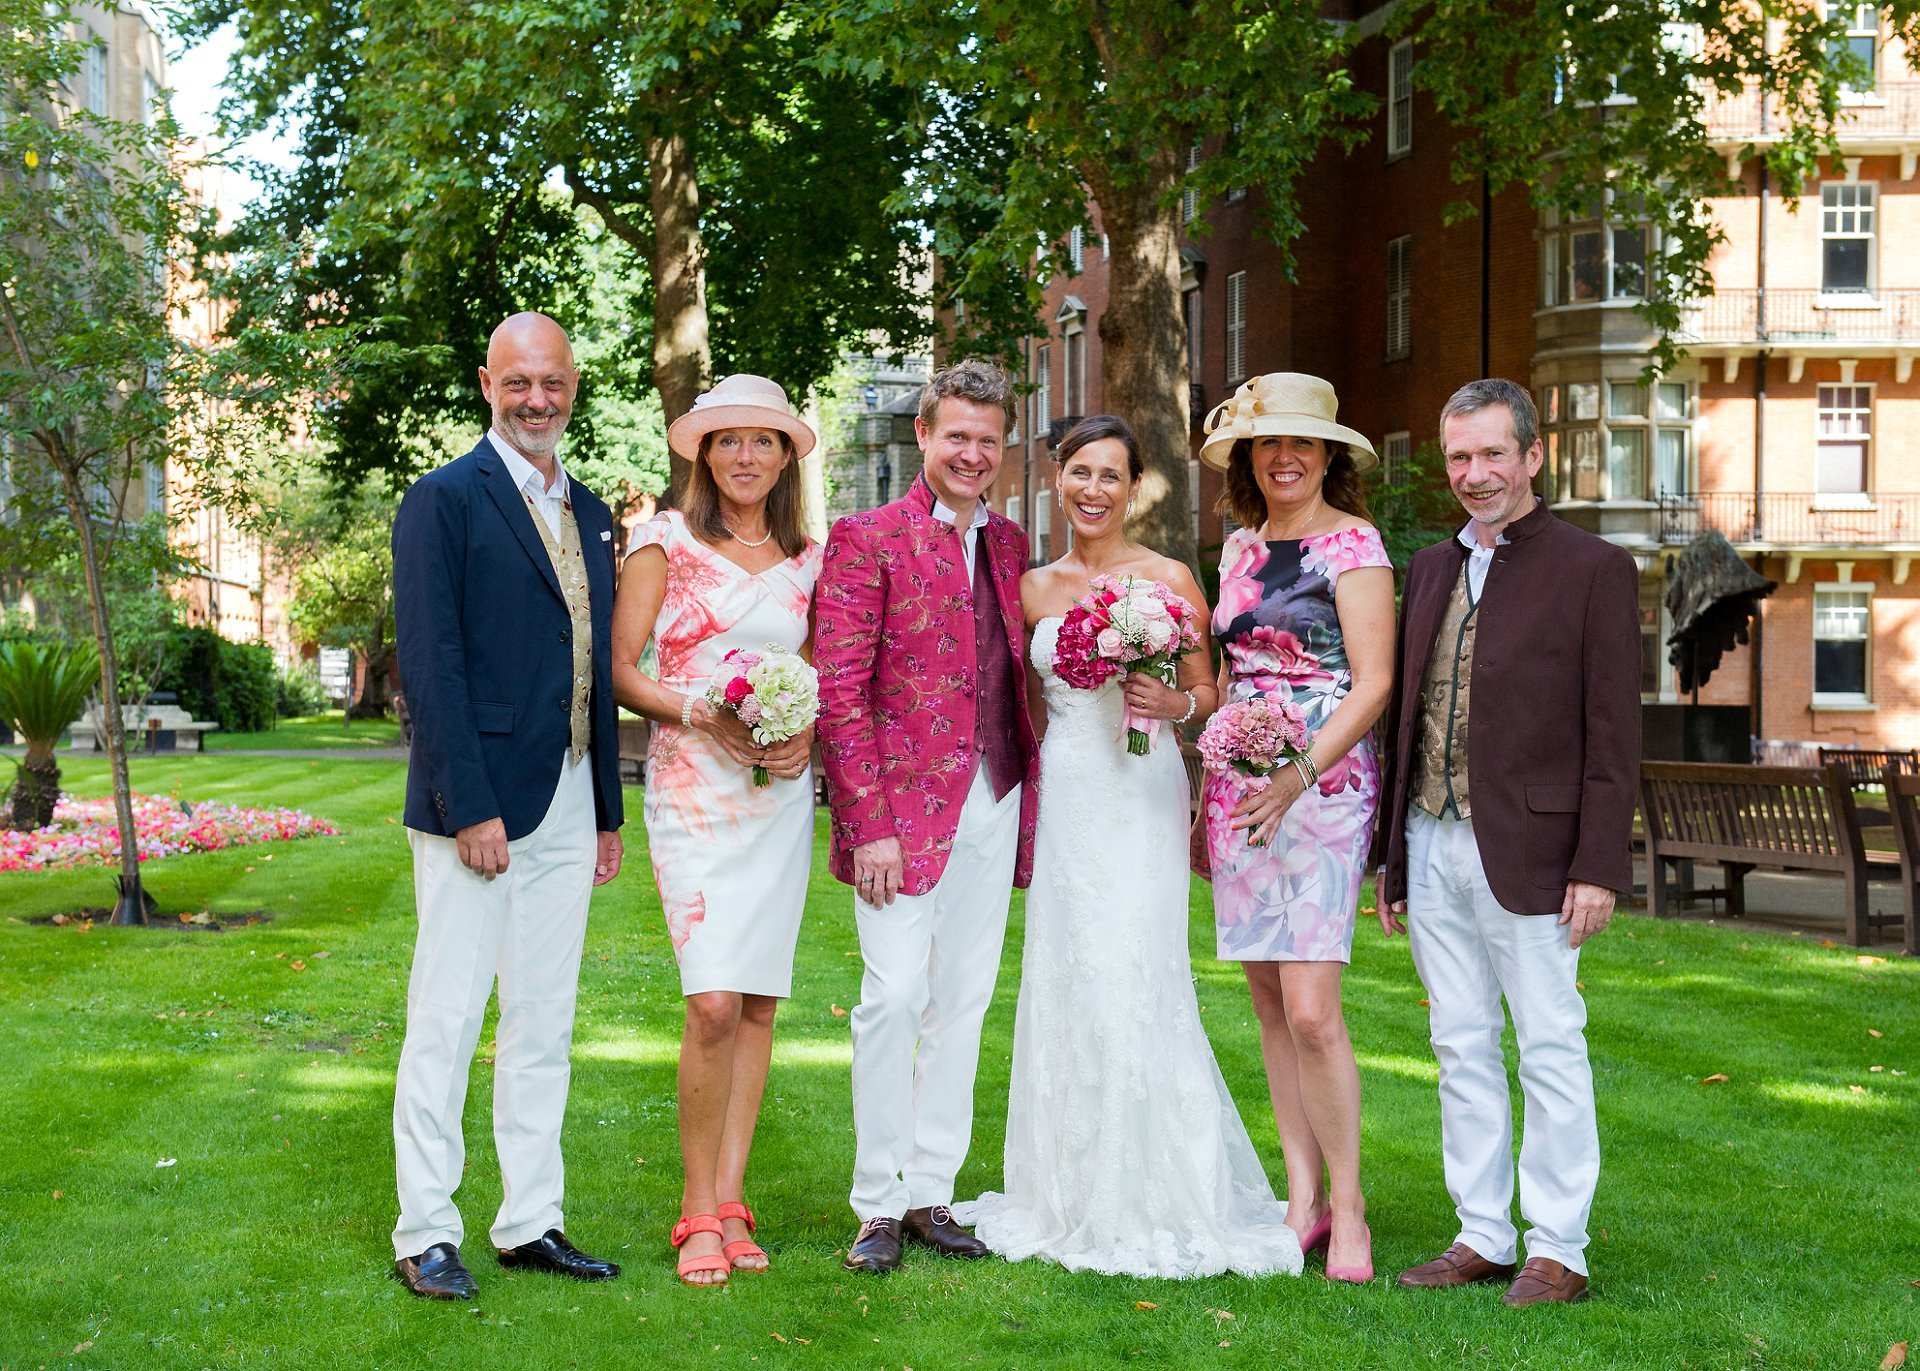 The bride and groom with their friends and witnesses after their Mayfair Library wedding